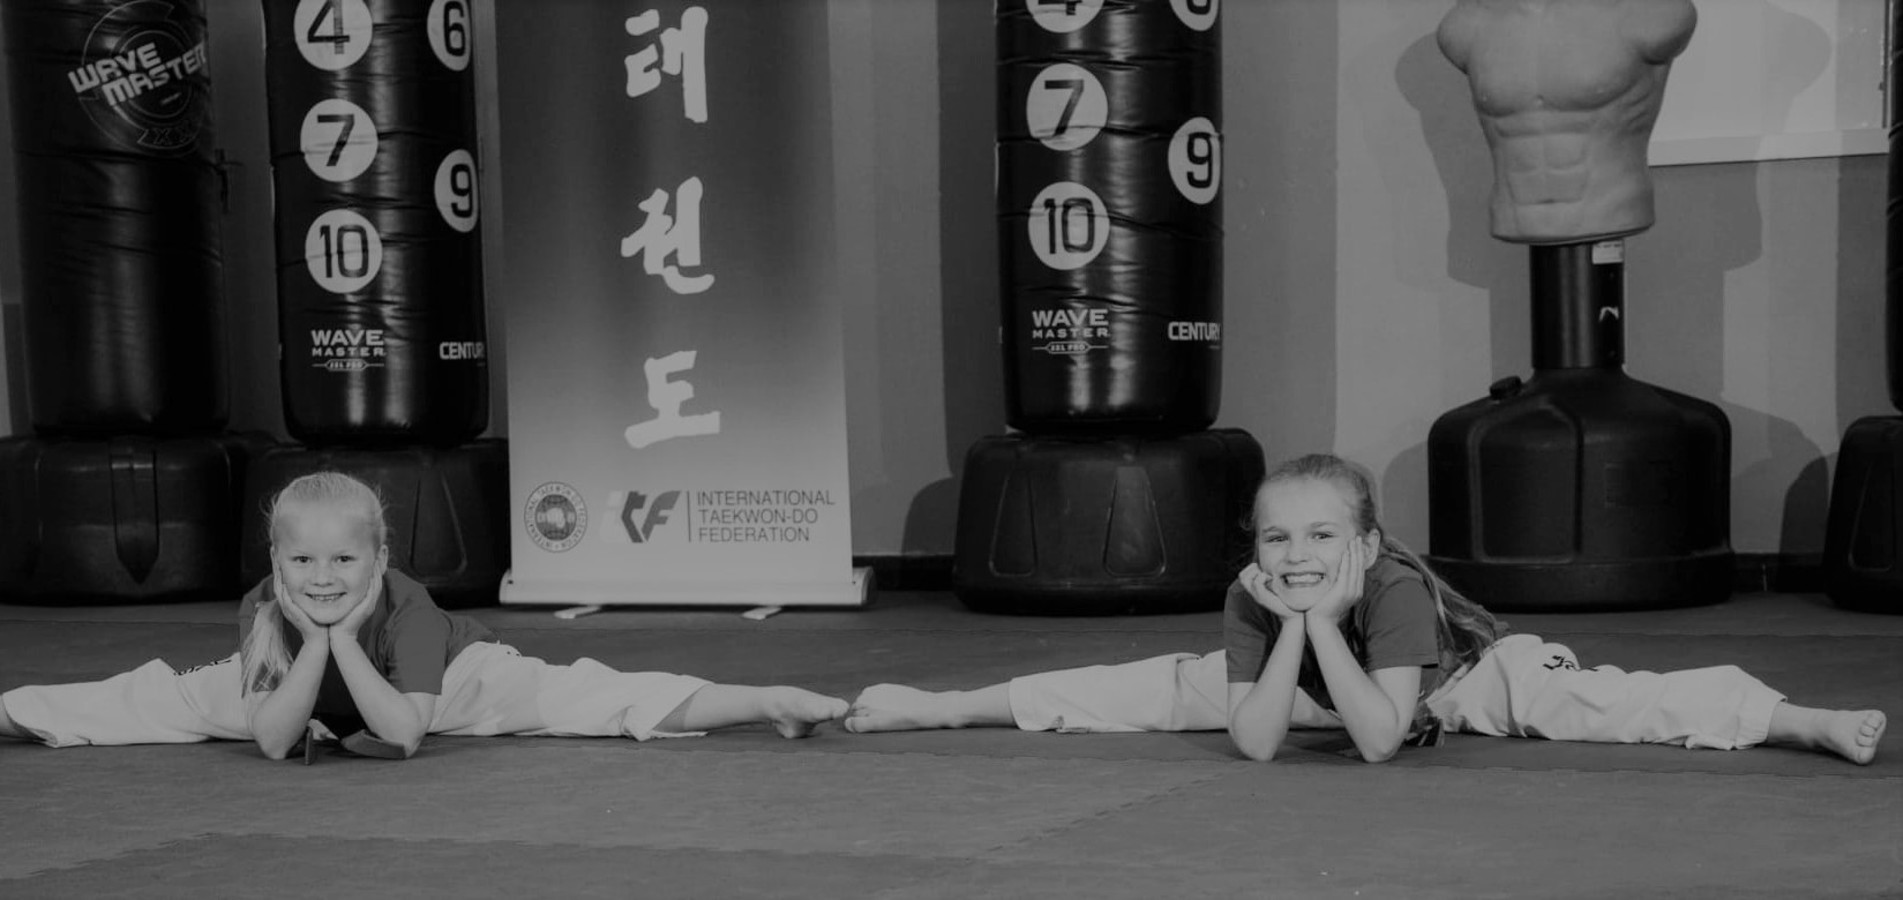 ONLINE Martial Arts for 6-8 years olds - GIRLS CAN KICK TOO!